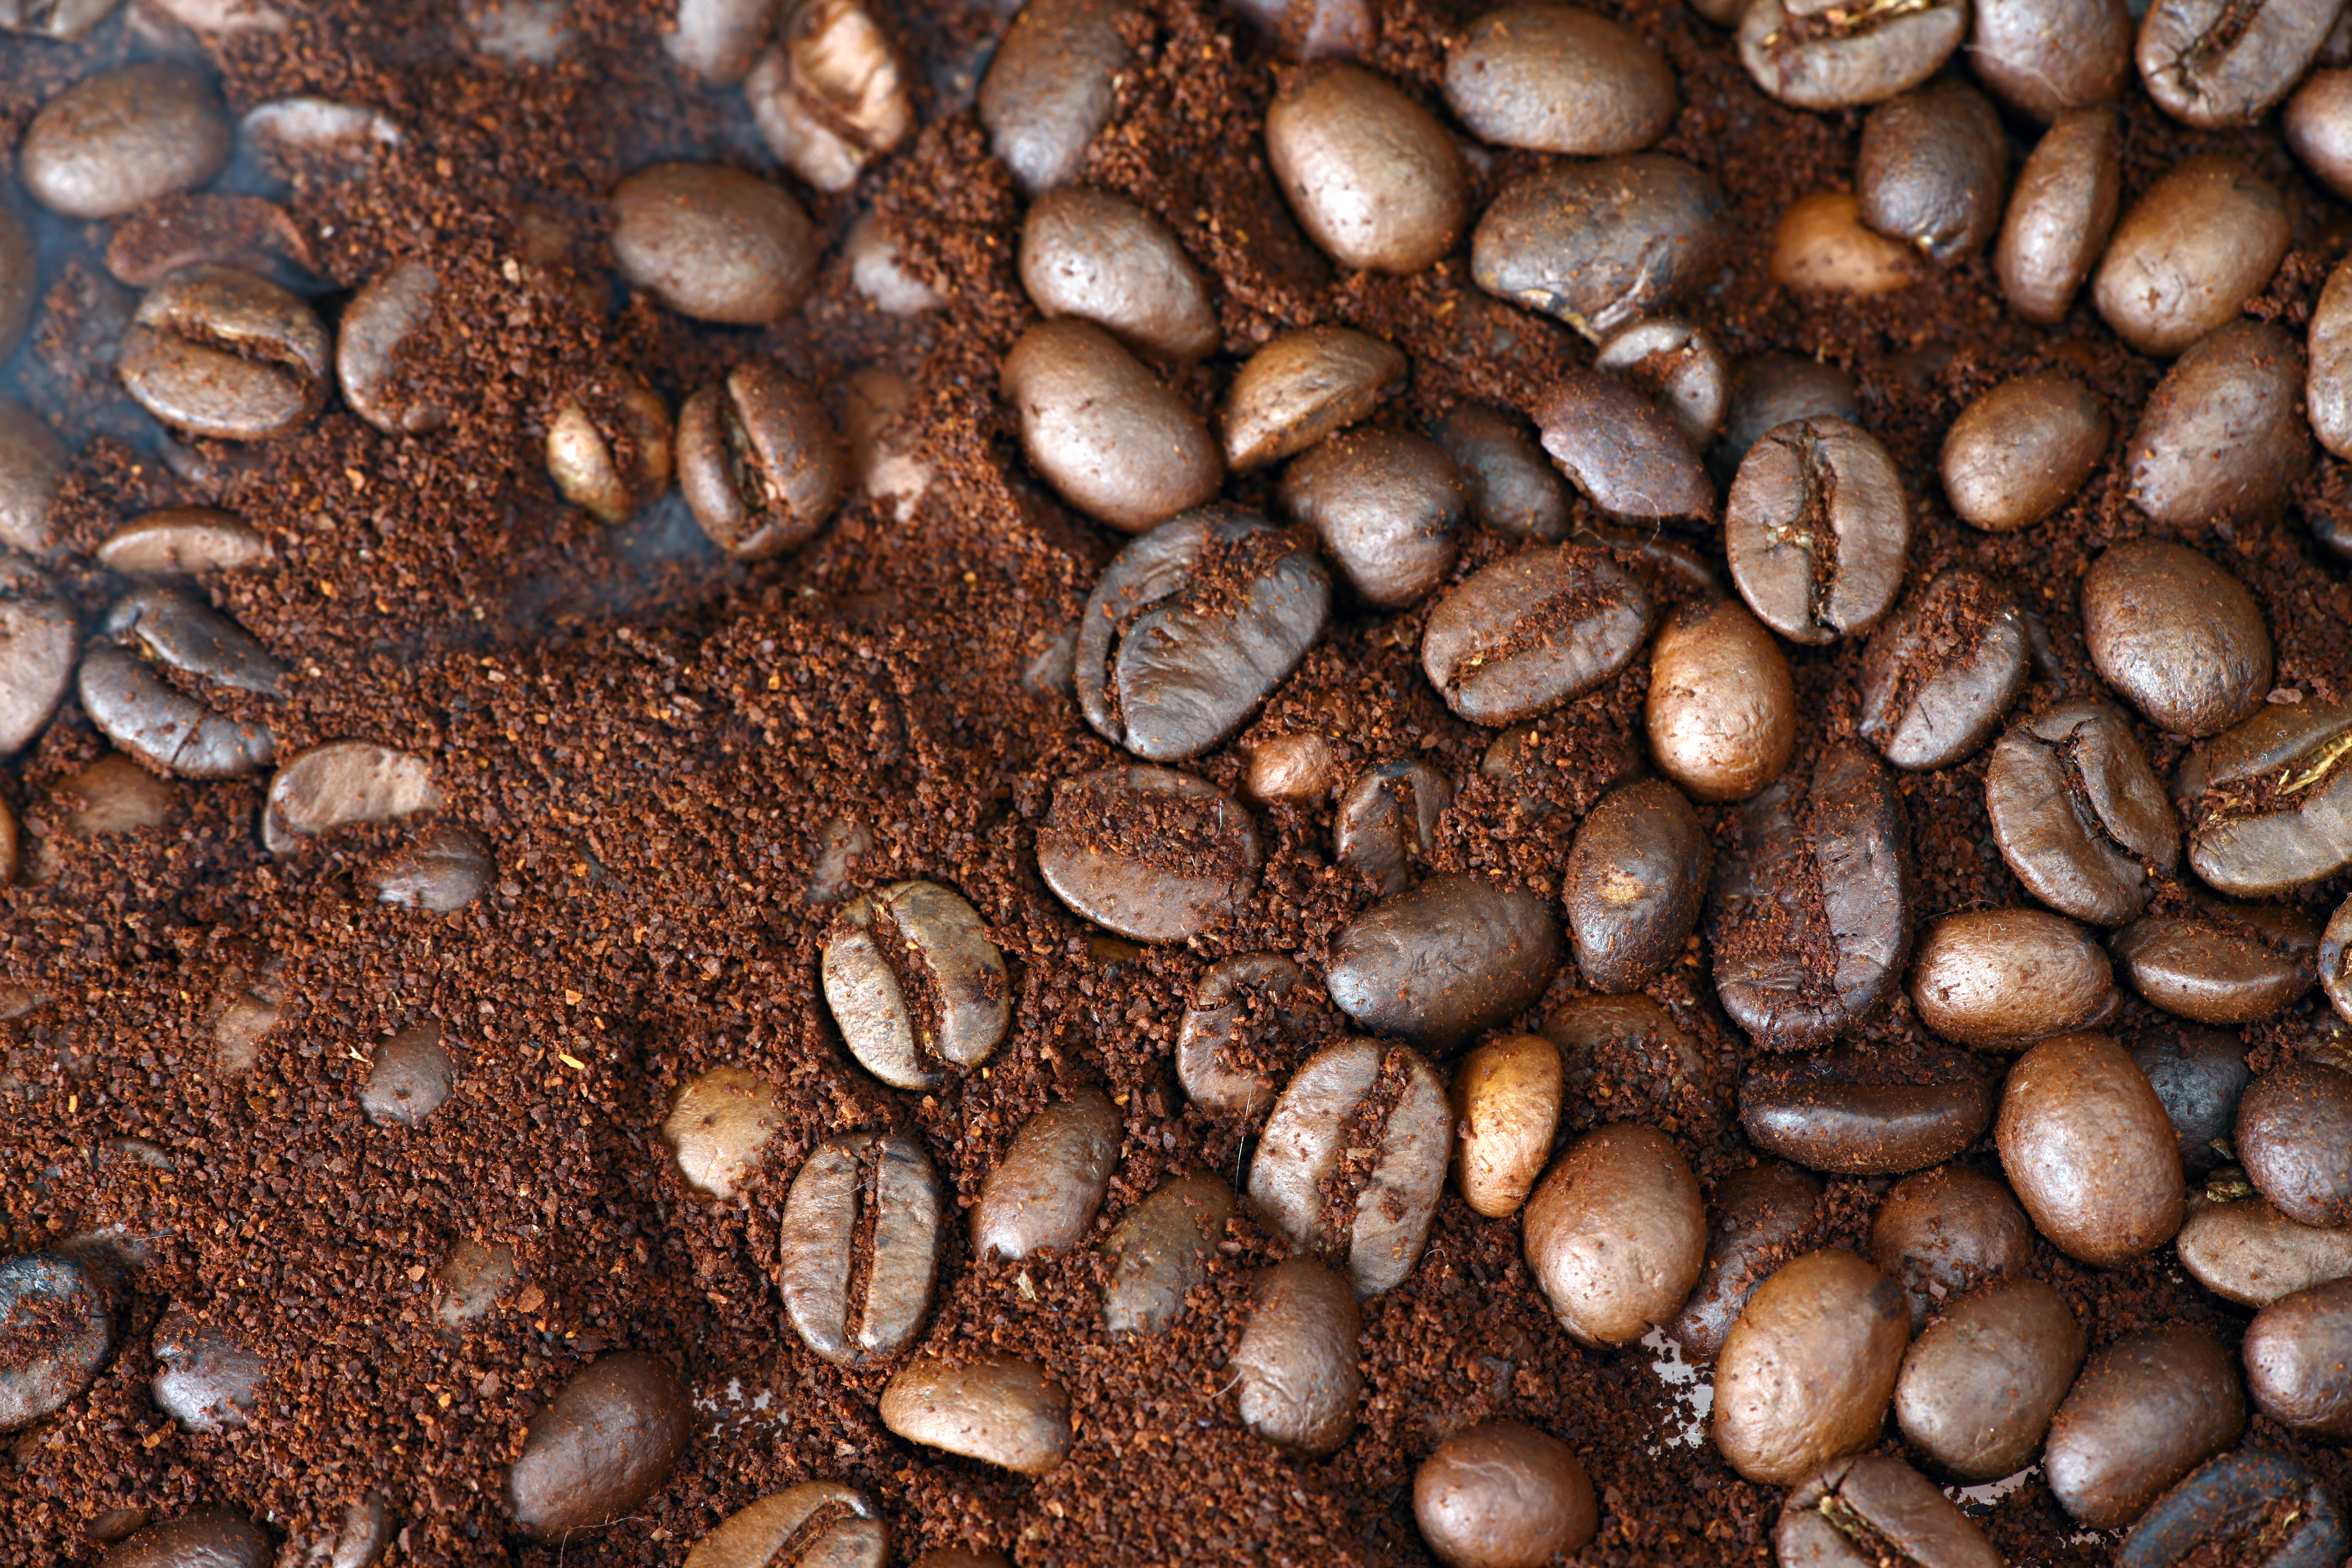 coffee beans, Abstract, Objects, Ingredient, Large, HQ Photo